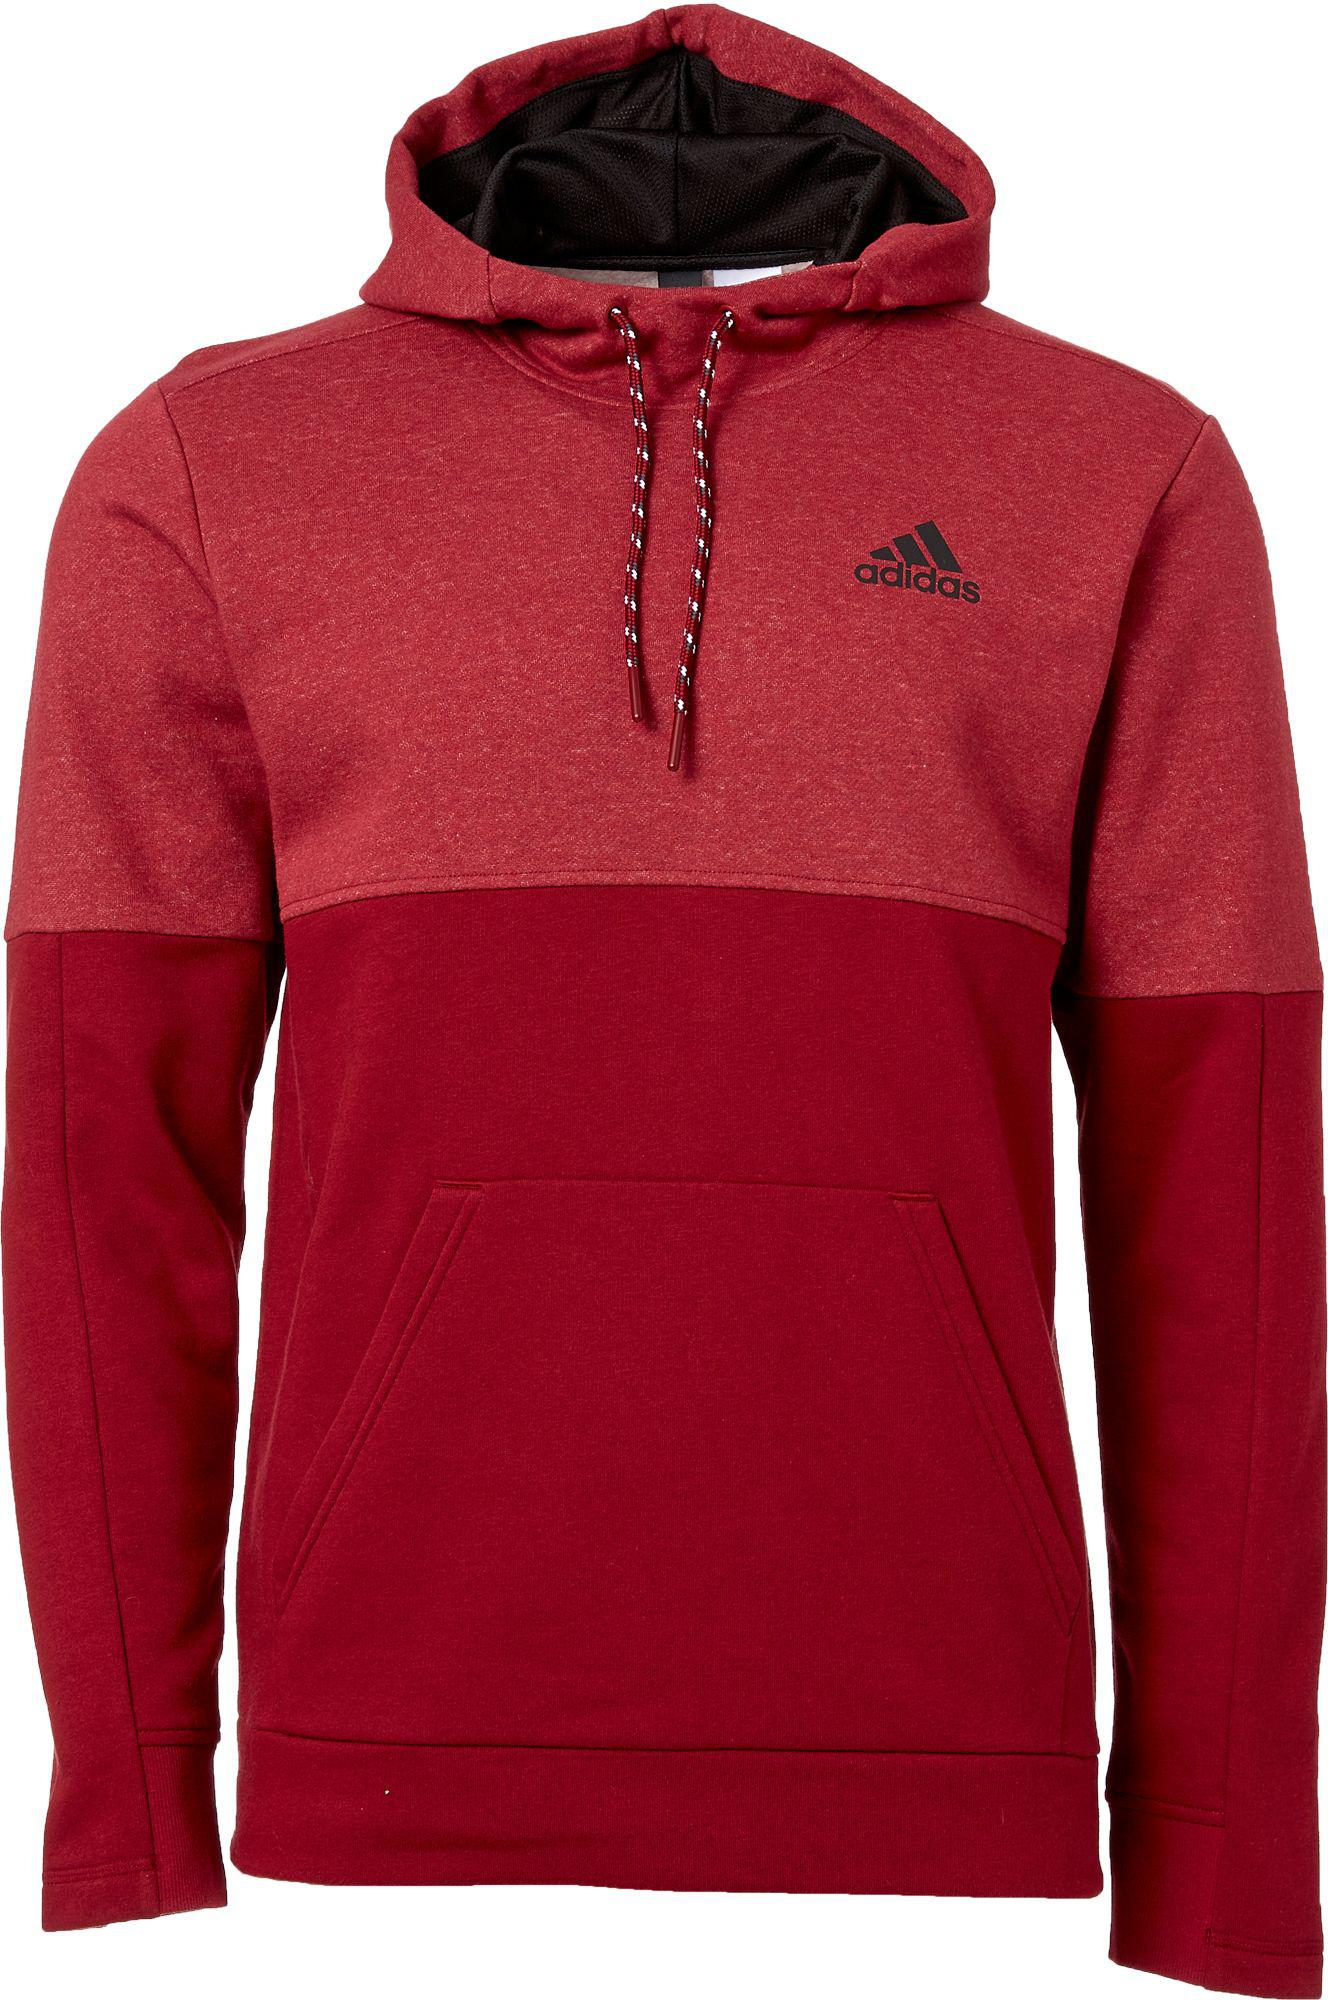 Post Adidas Game Lyst Hoodie For Men Red In CwqxUvd5